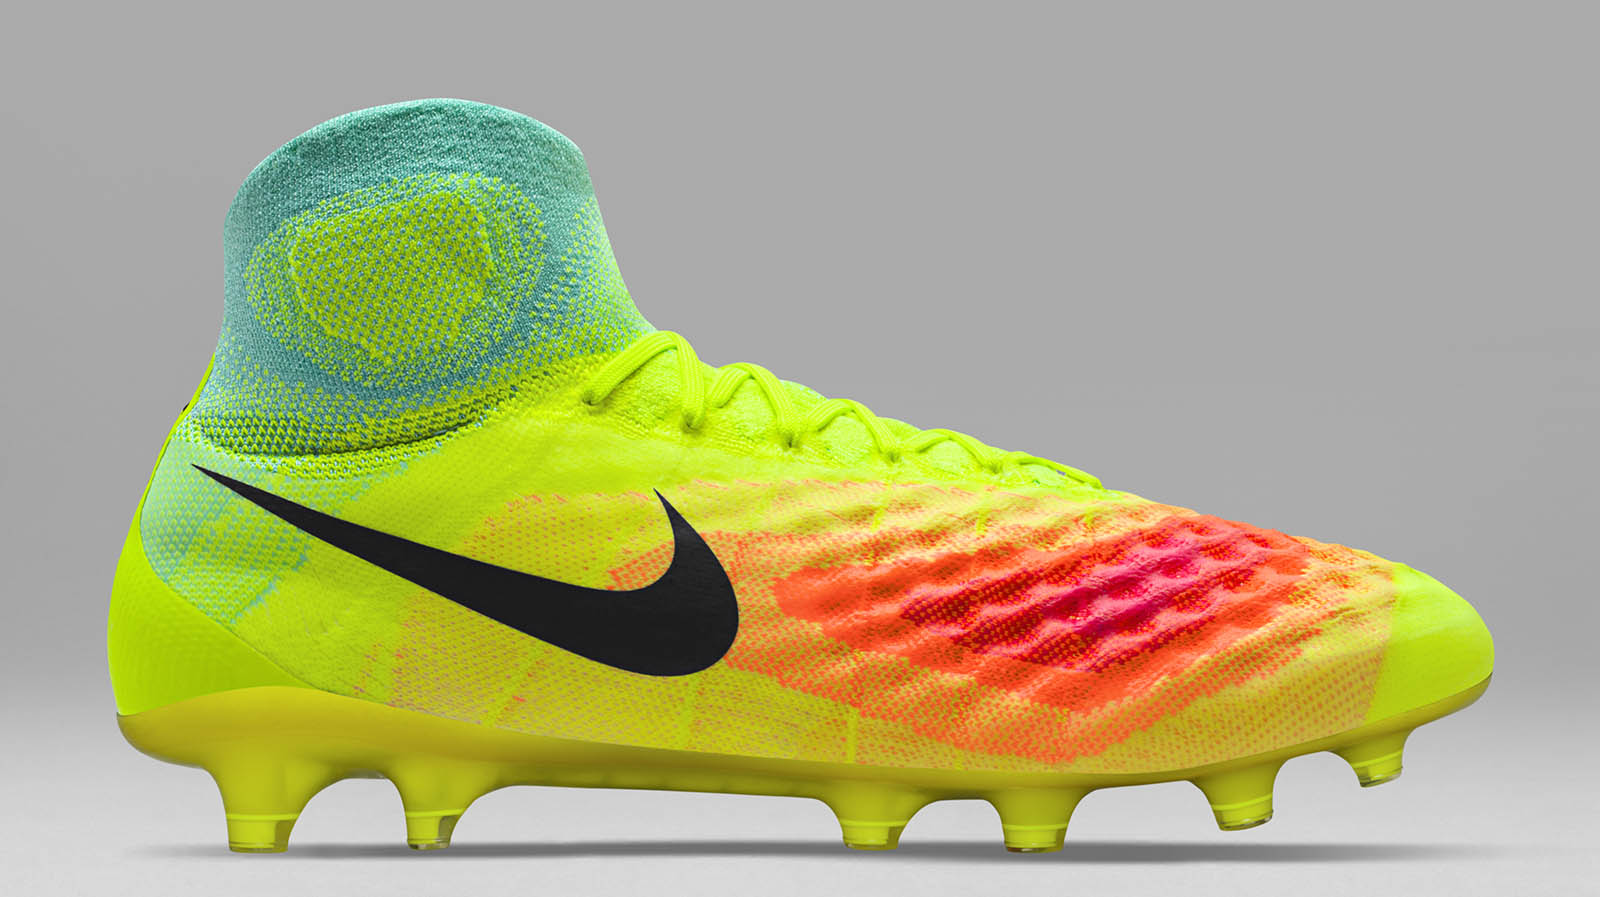 Next-Gen Nike Magista Obra II 2016-17 Boots Released ...